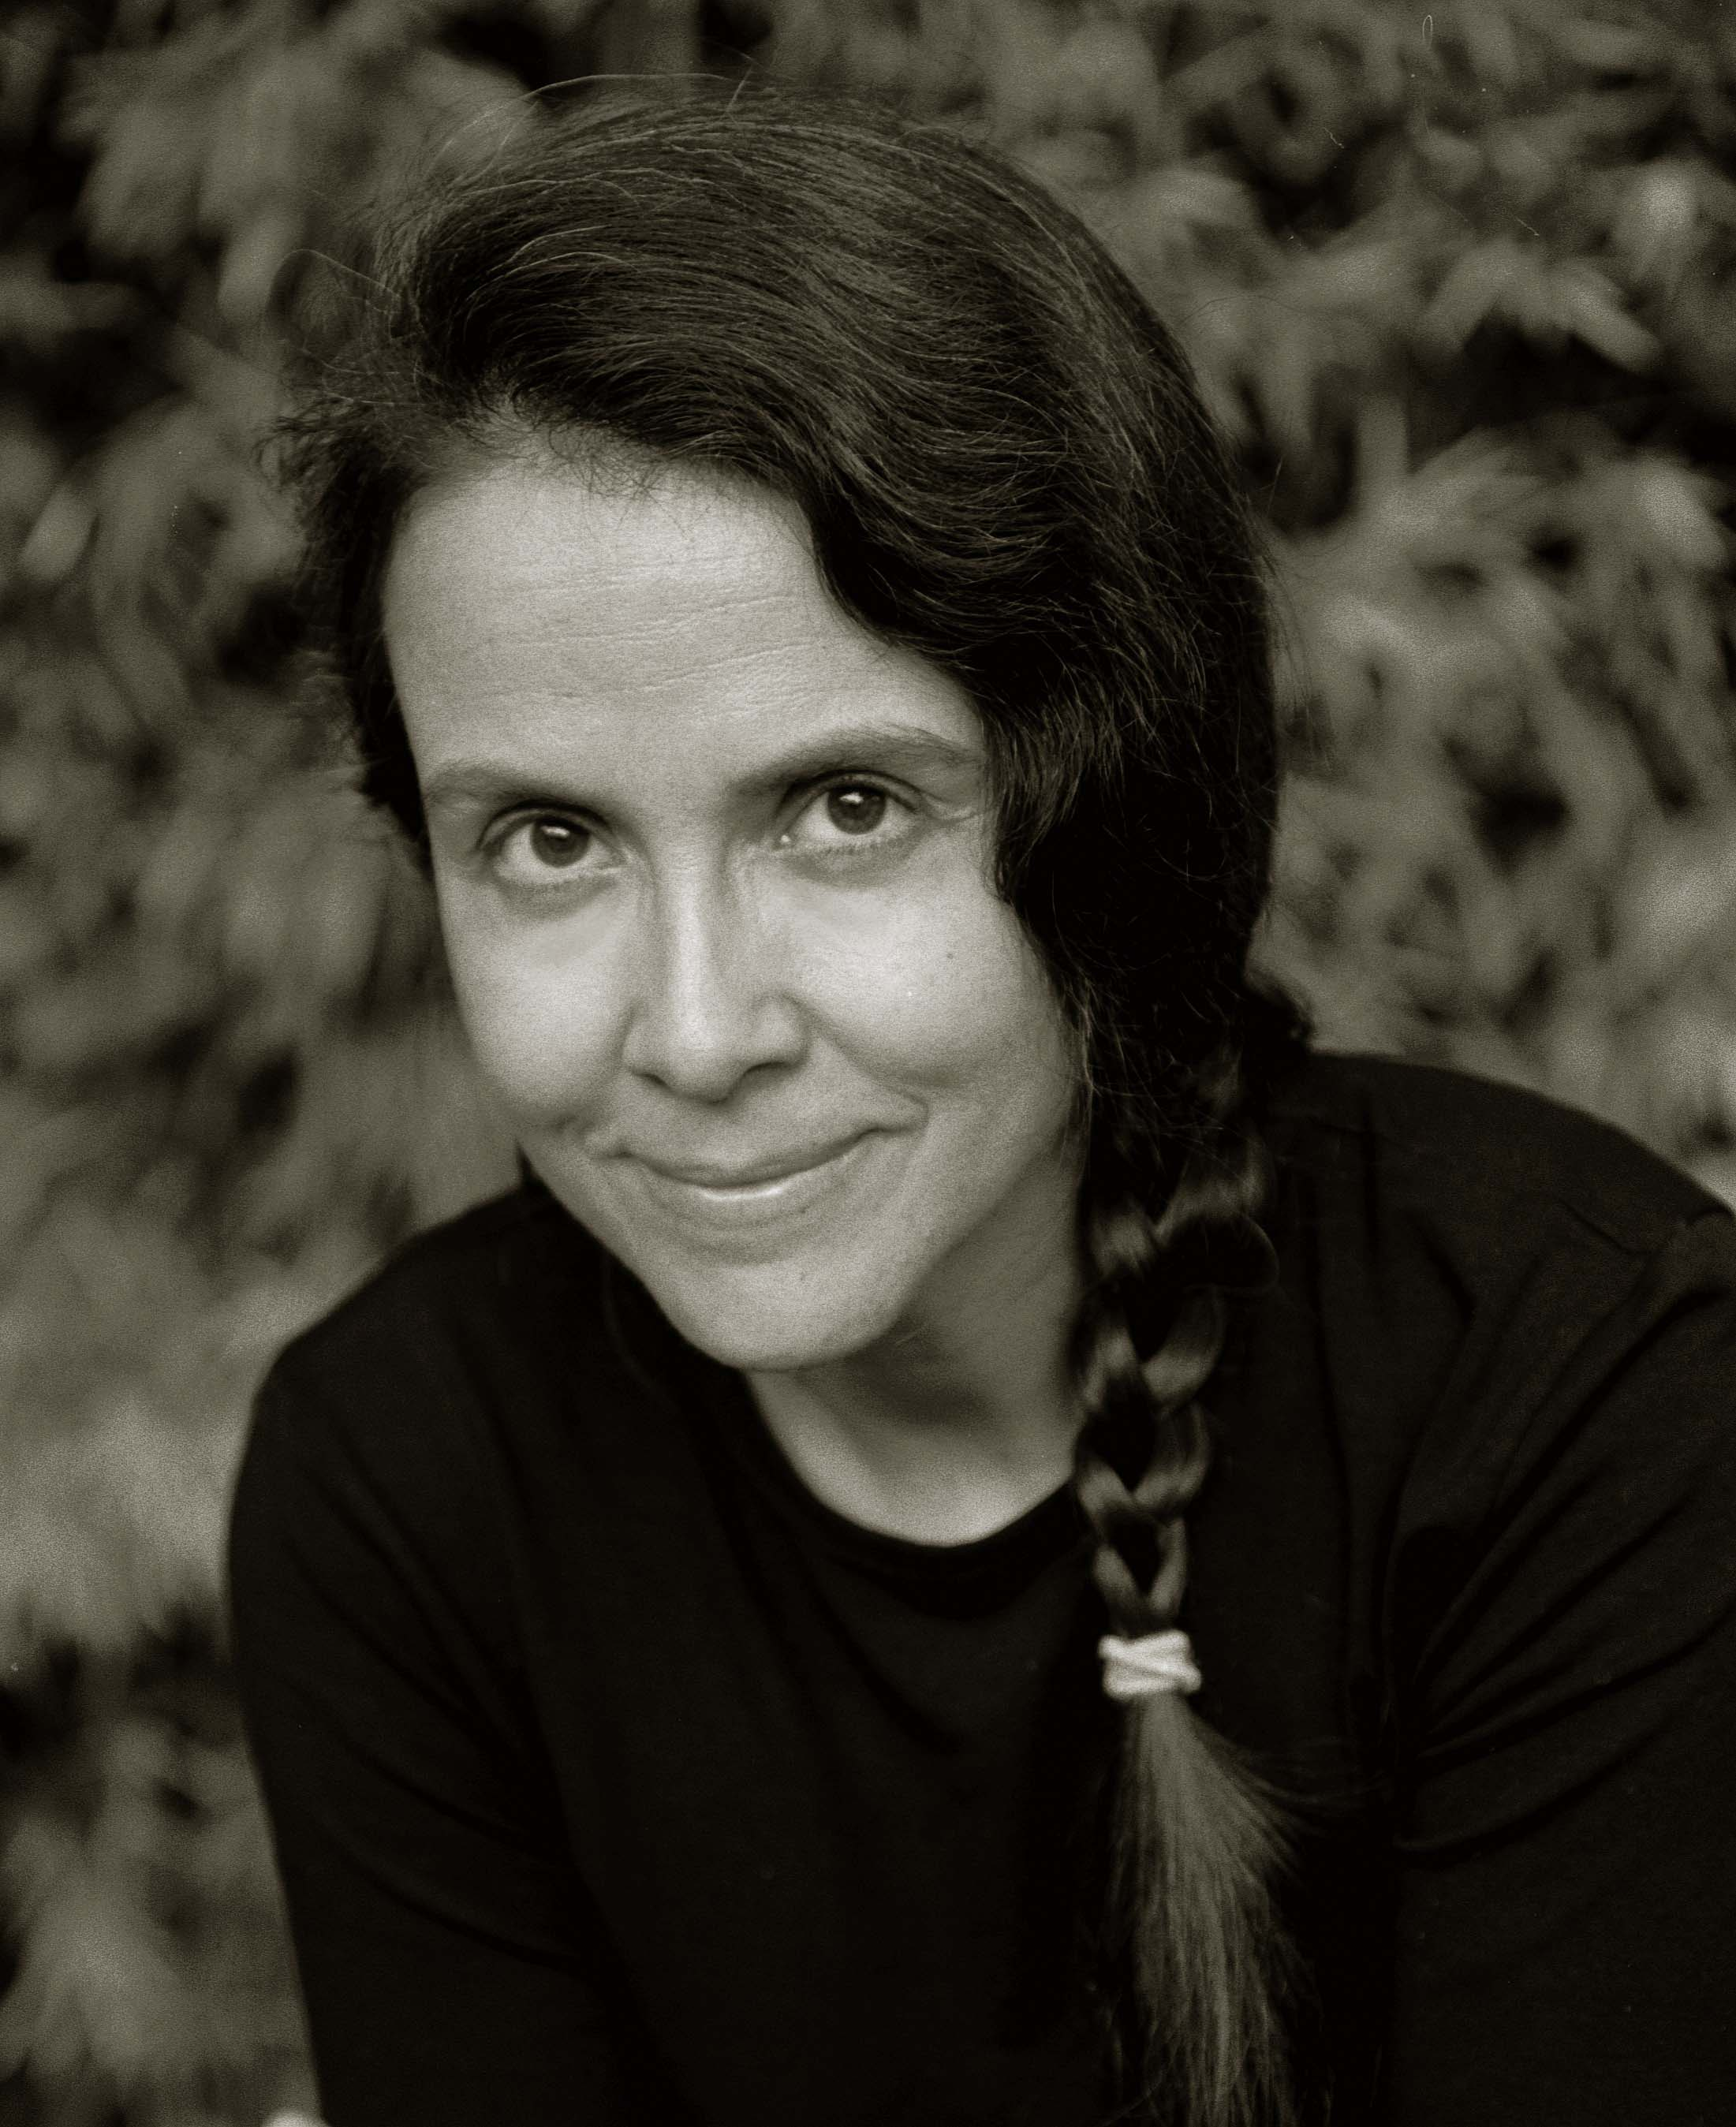 Politics, perception, and precious details: Q&A with poet Naomi Shihab Nye